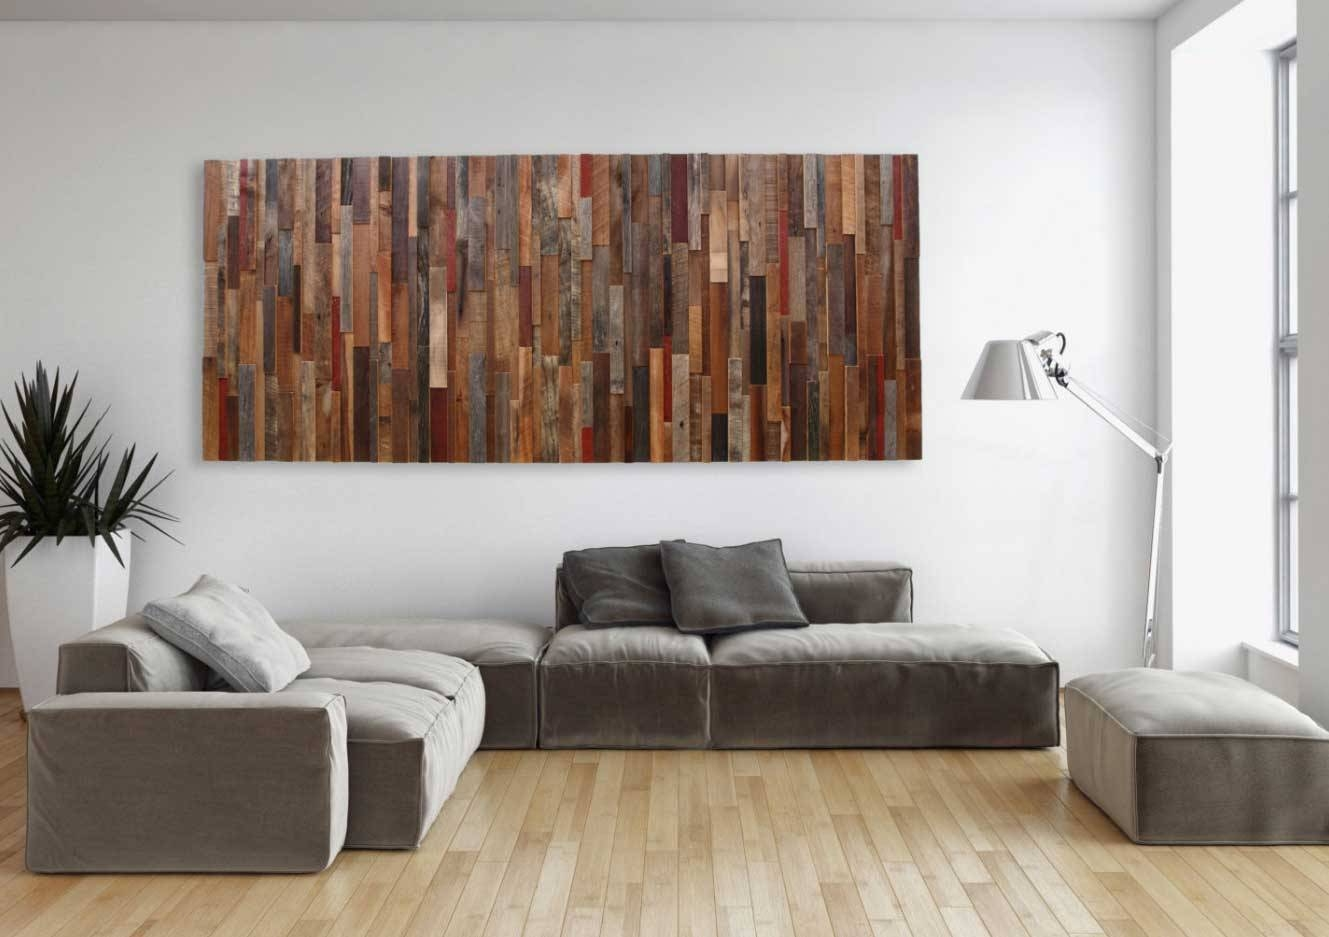 Oversized Wall Art Contemporary Sculpture Ideas | Home Interior Within Recent Oversized Wall Art (View 23 of 25)